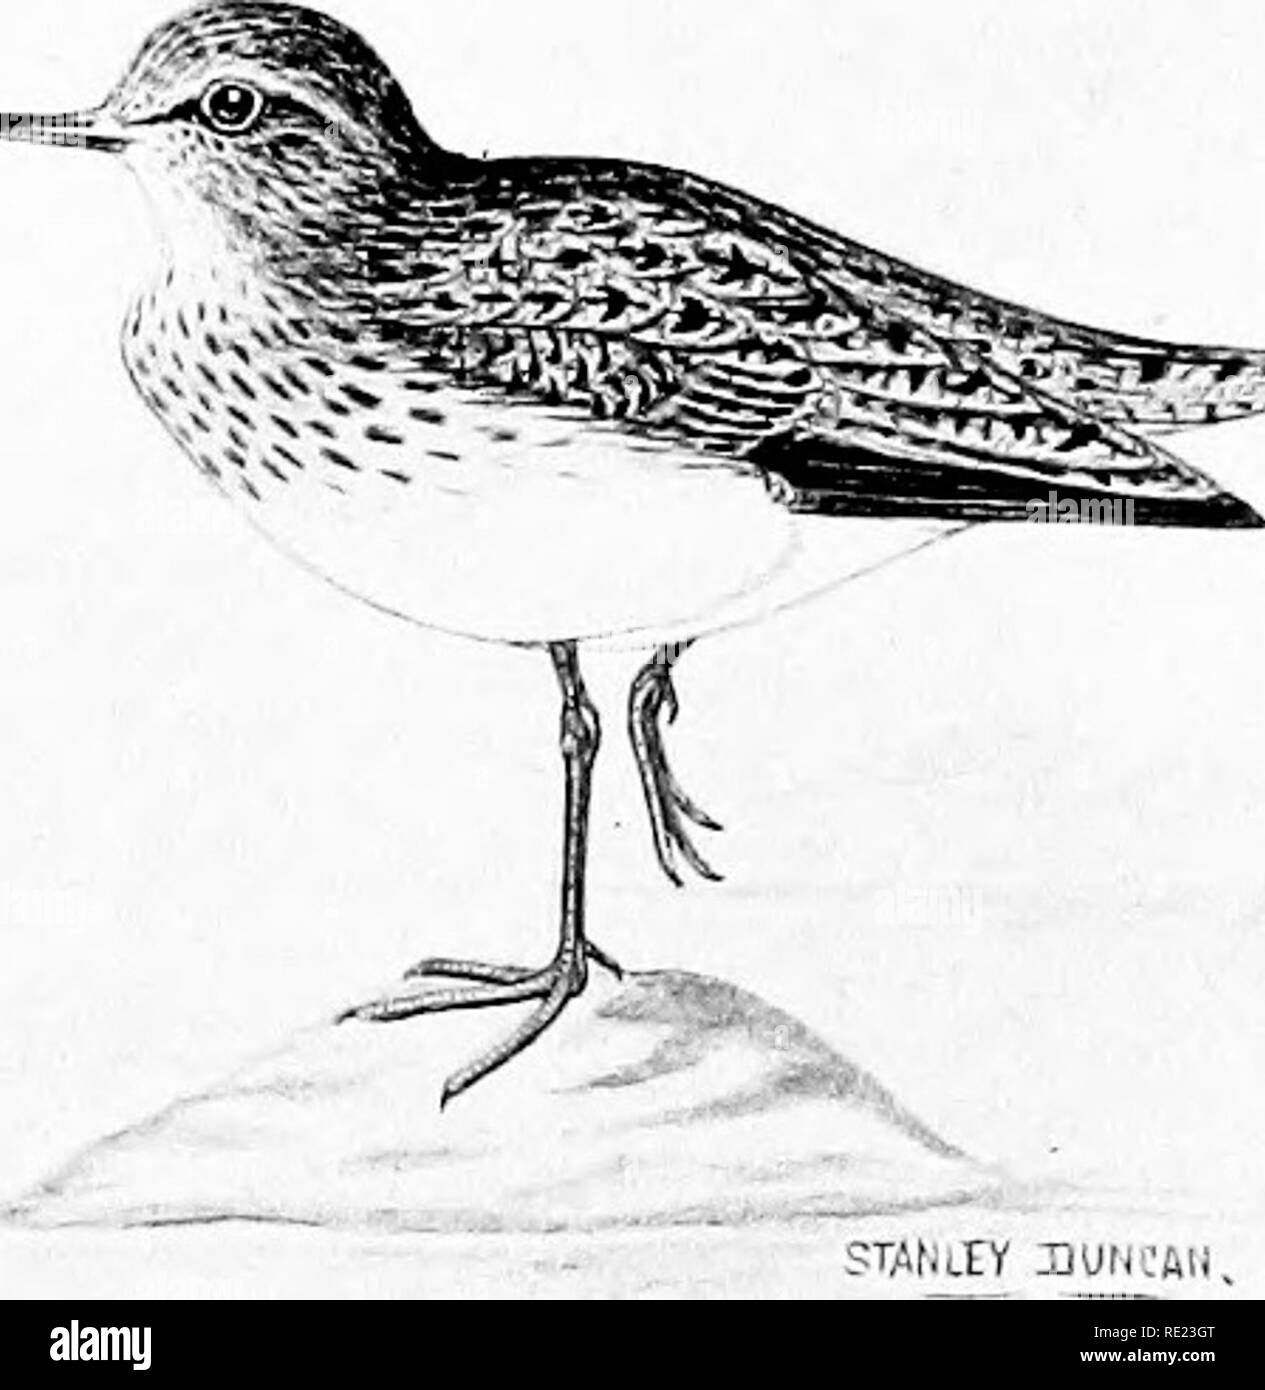 . The complete wildfowler. Game and game-birds; Hunting. LITTLE STINT '^^V^j^y. COMMON SANDPIPER. Please note that these images are extracted from scanned page images that may have been digitally enhanced for readability - coloration and appearance of these illustrations may not perfectly resemble the original work.. Duncan, Stanley; Gull, Cyril Edward Ranger, 1876-1947. London, G. Richards, Ltd - Stock Image